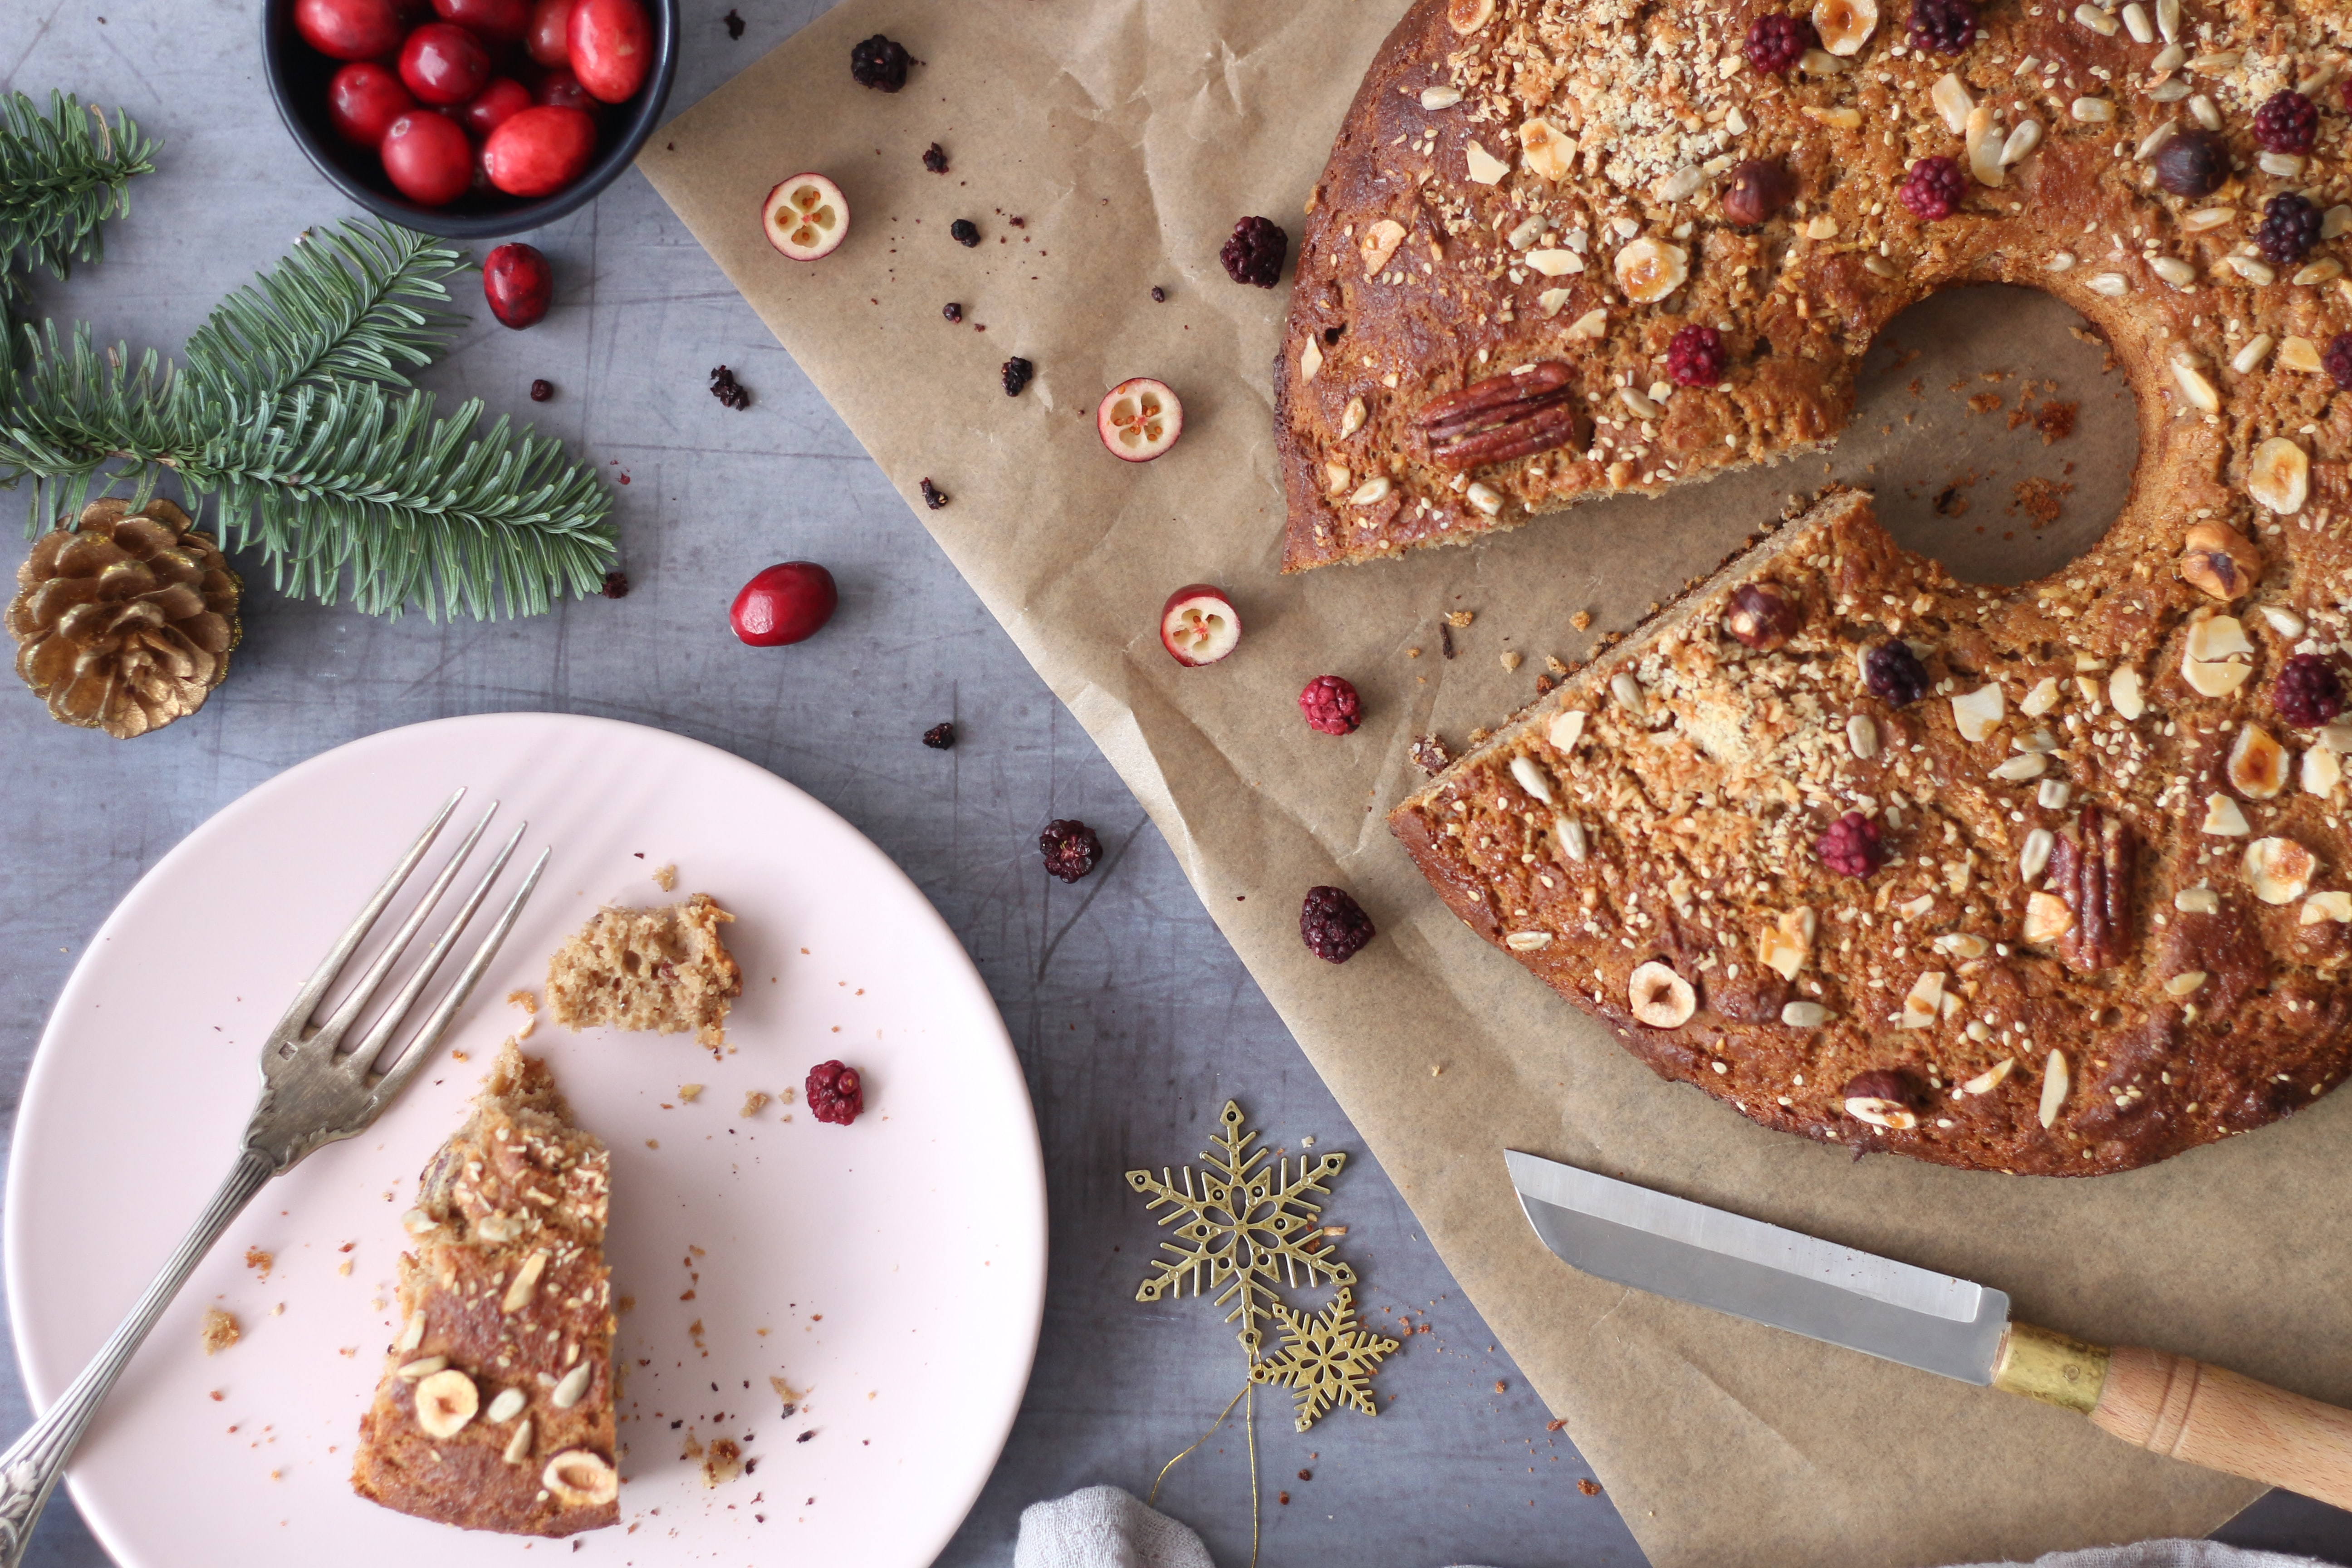 holiday cranberry cake and slice on plate